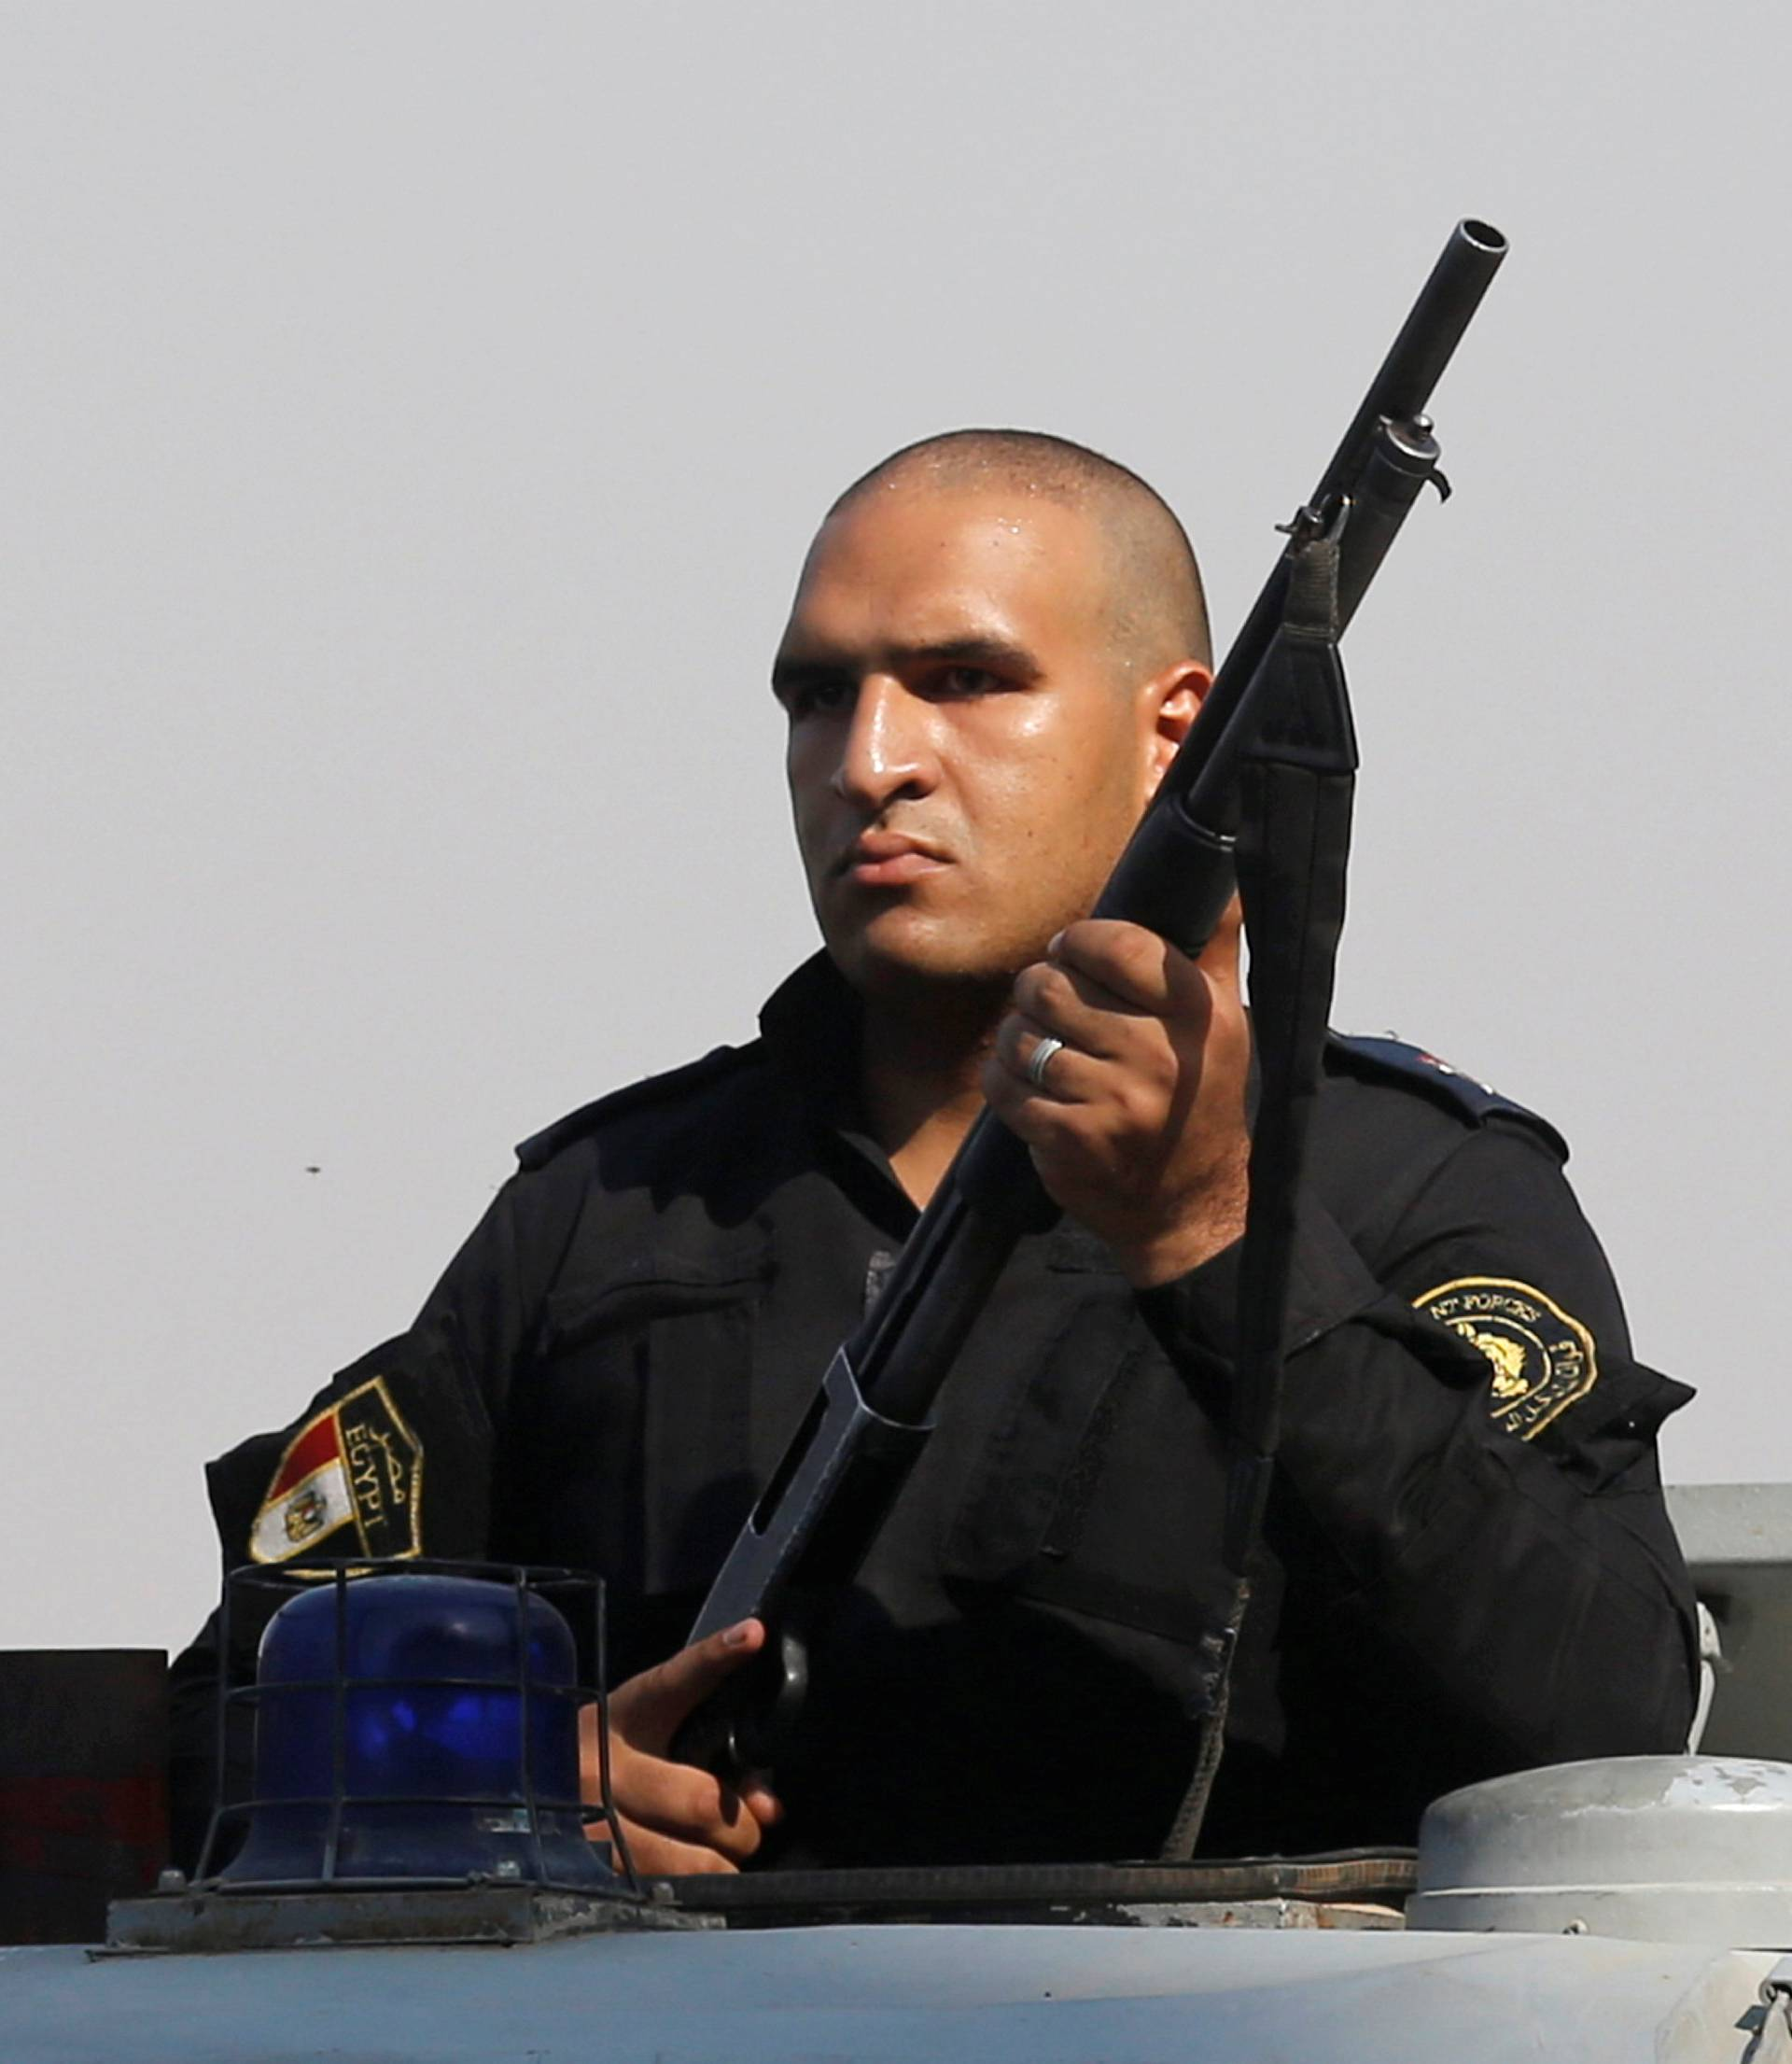 A special police officer stand on a police car during the funeral of Syed Tafshan in the south of Cairo